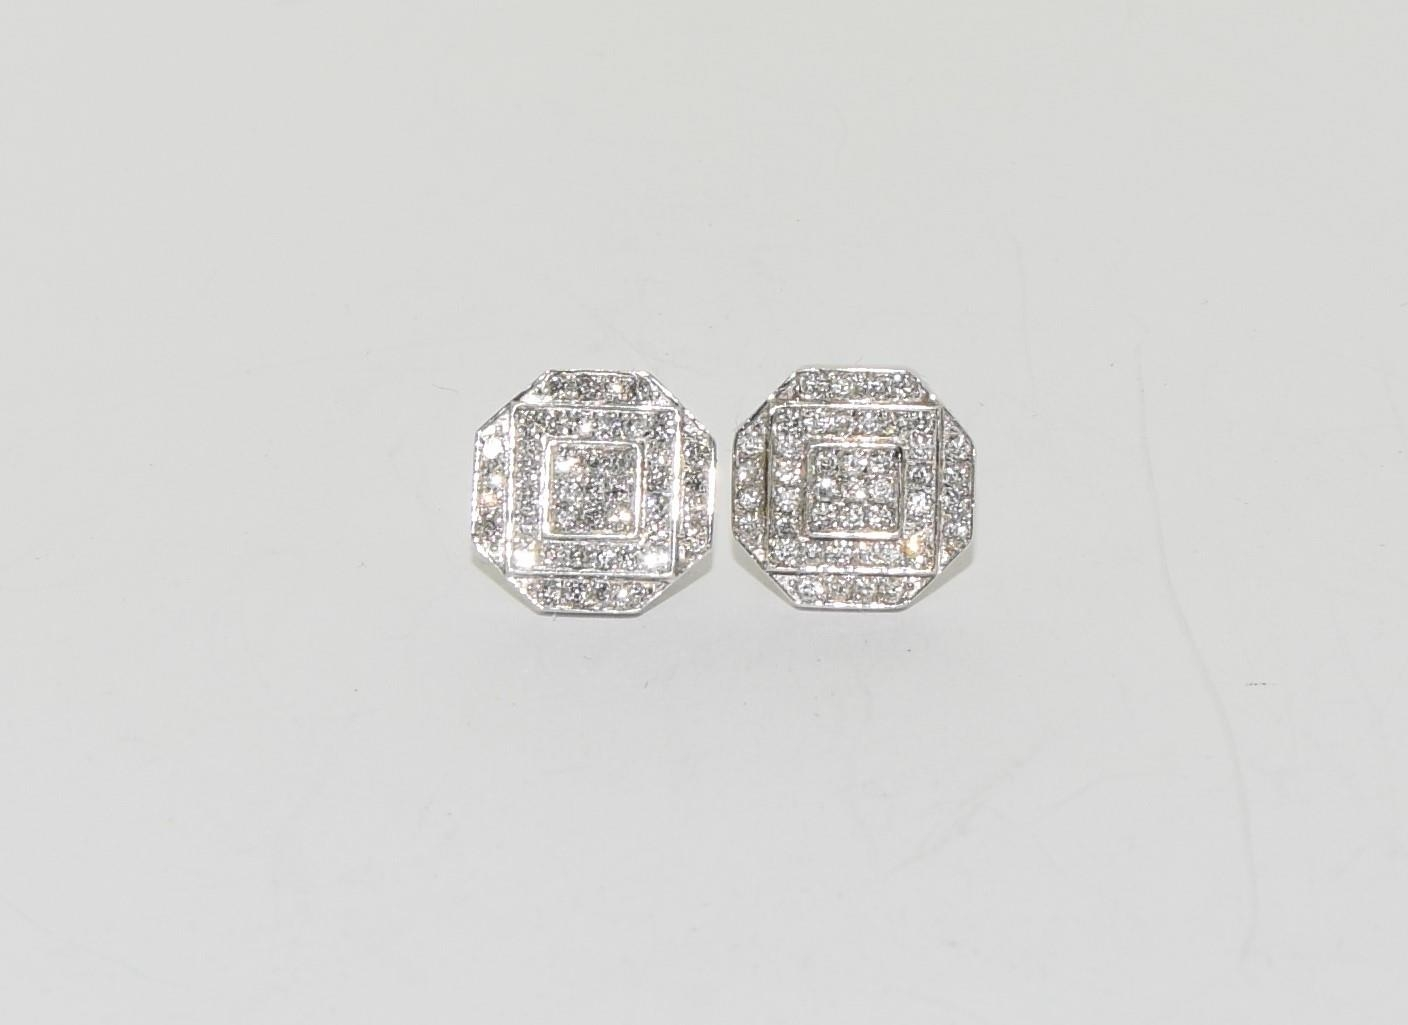 Pair of 14ct white gold cluster diamond earrings of approx 1ct - Image 5 of 5